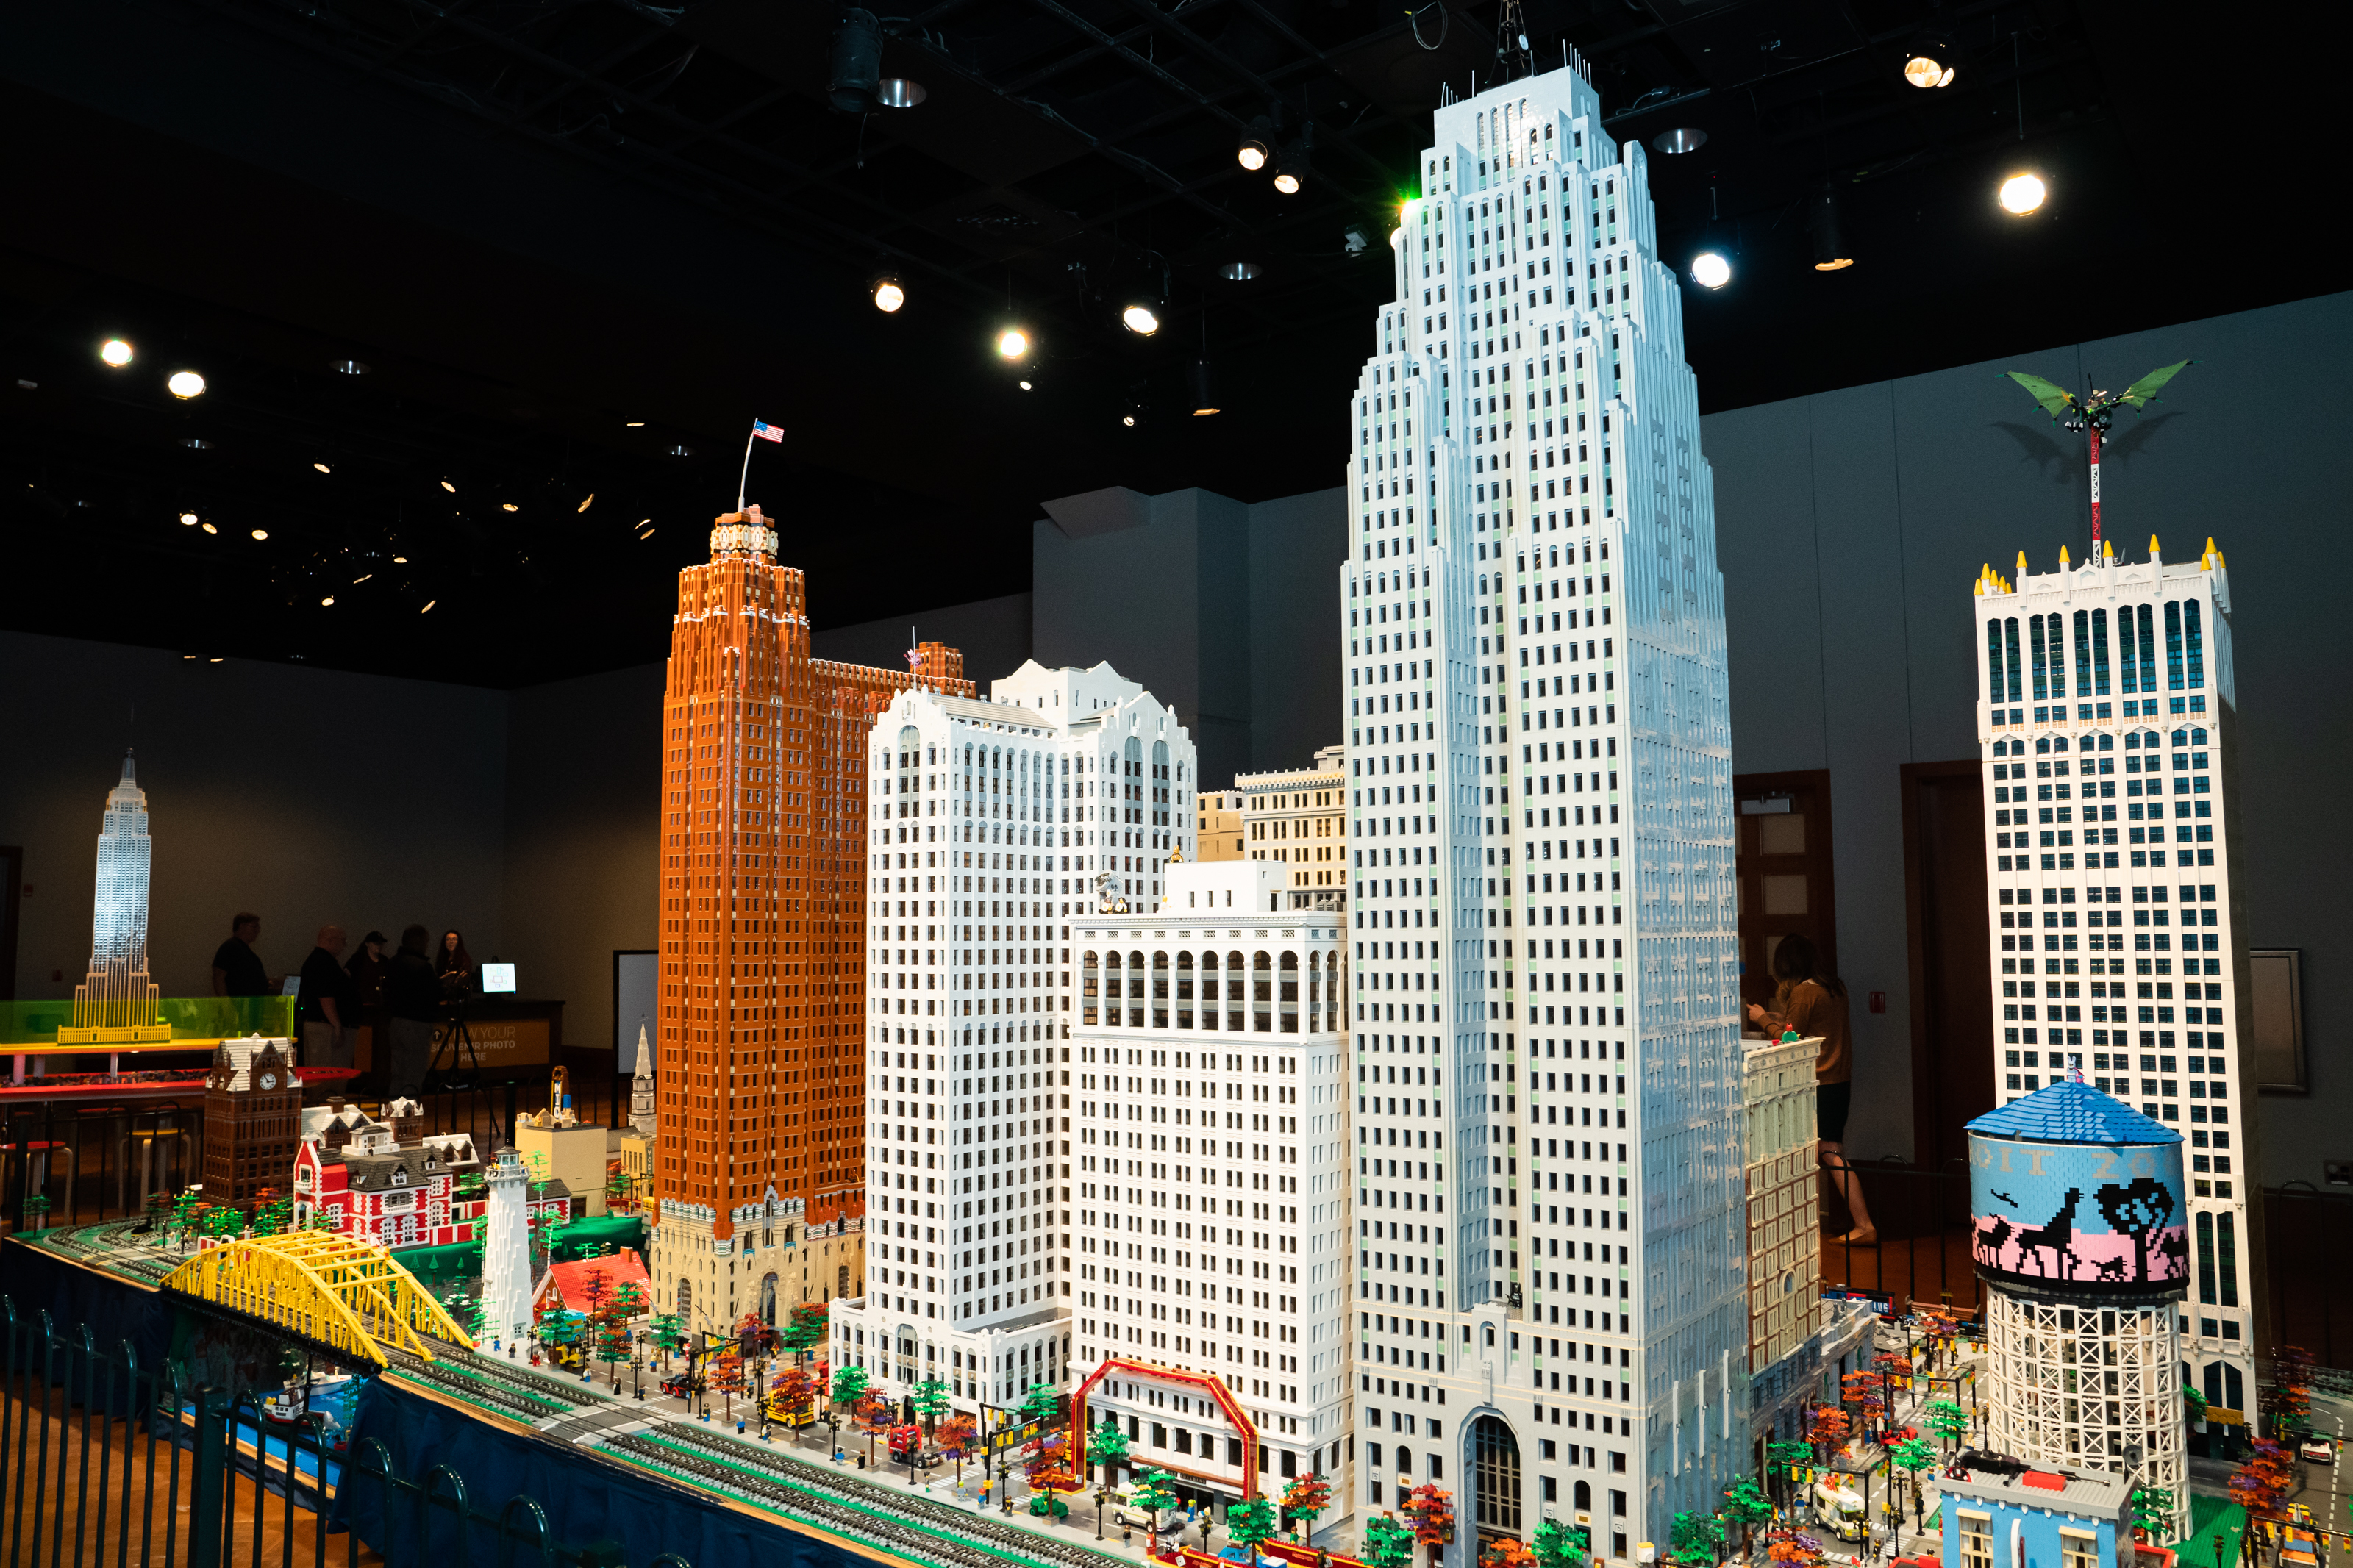 Detroit skyline featured in Lego exhibit on iconic skyscrapers at Henry Ford